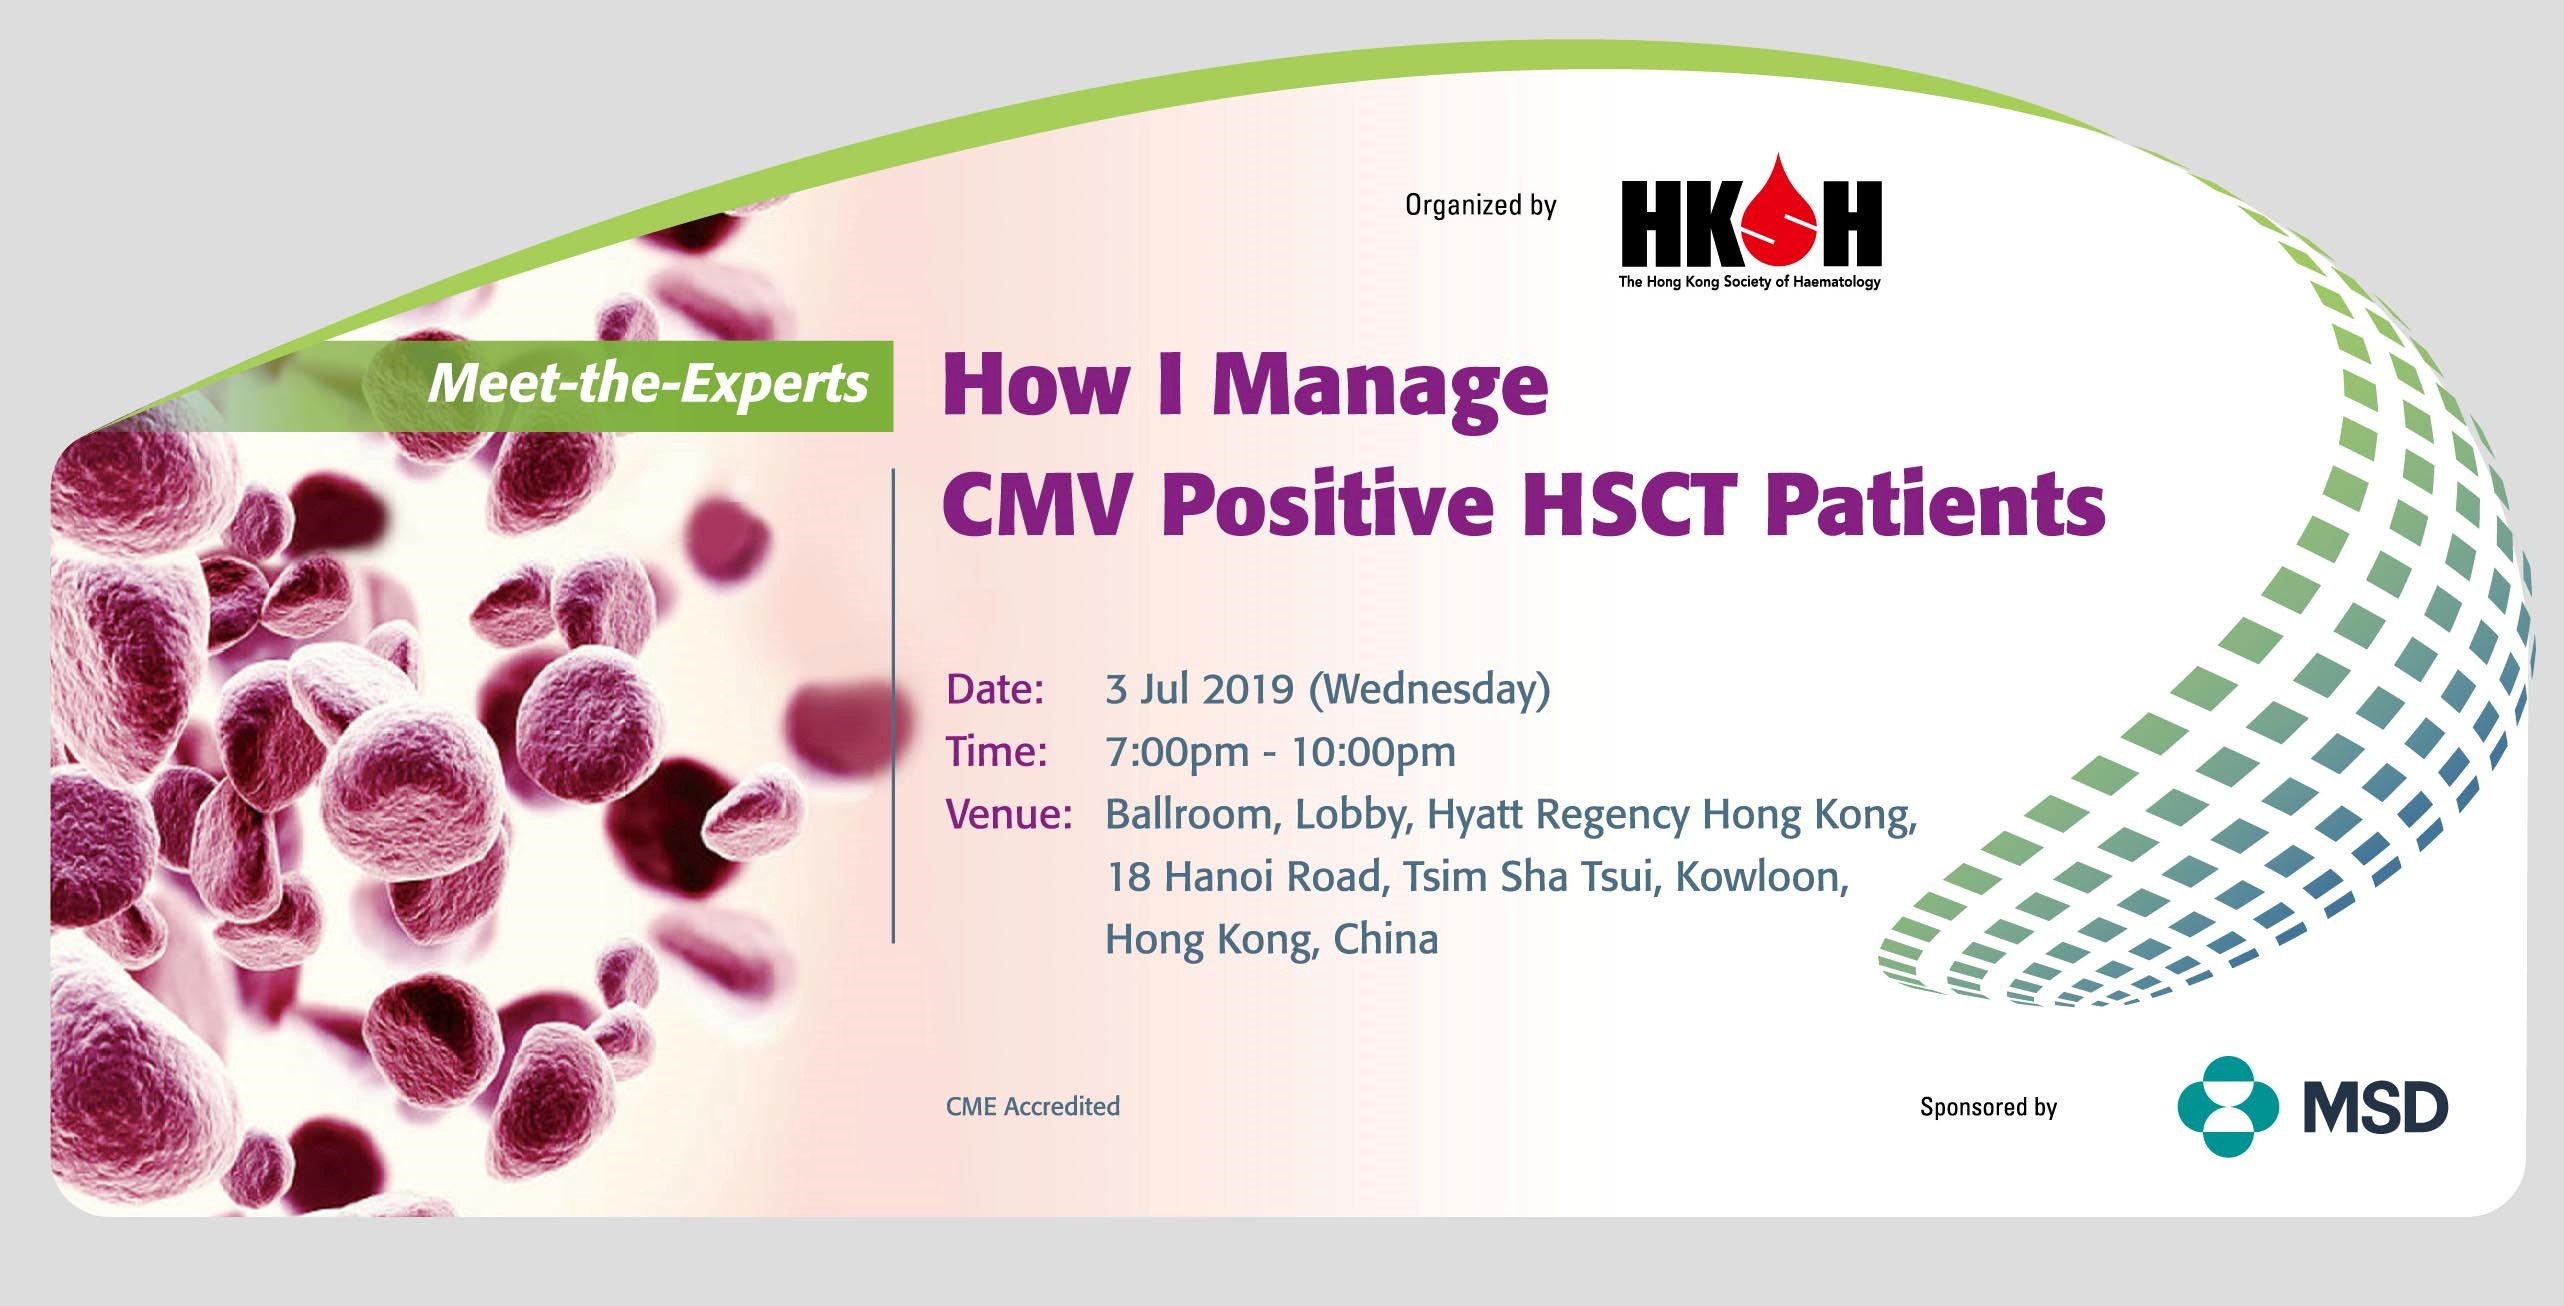 Meet-the-Experts: How I Manage CMV Positive HSCT Patients